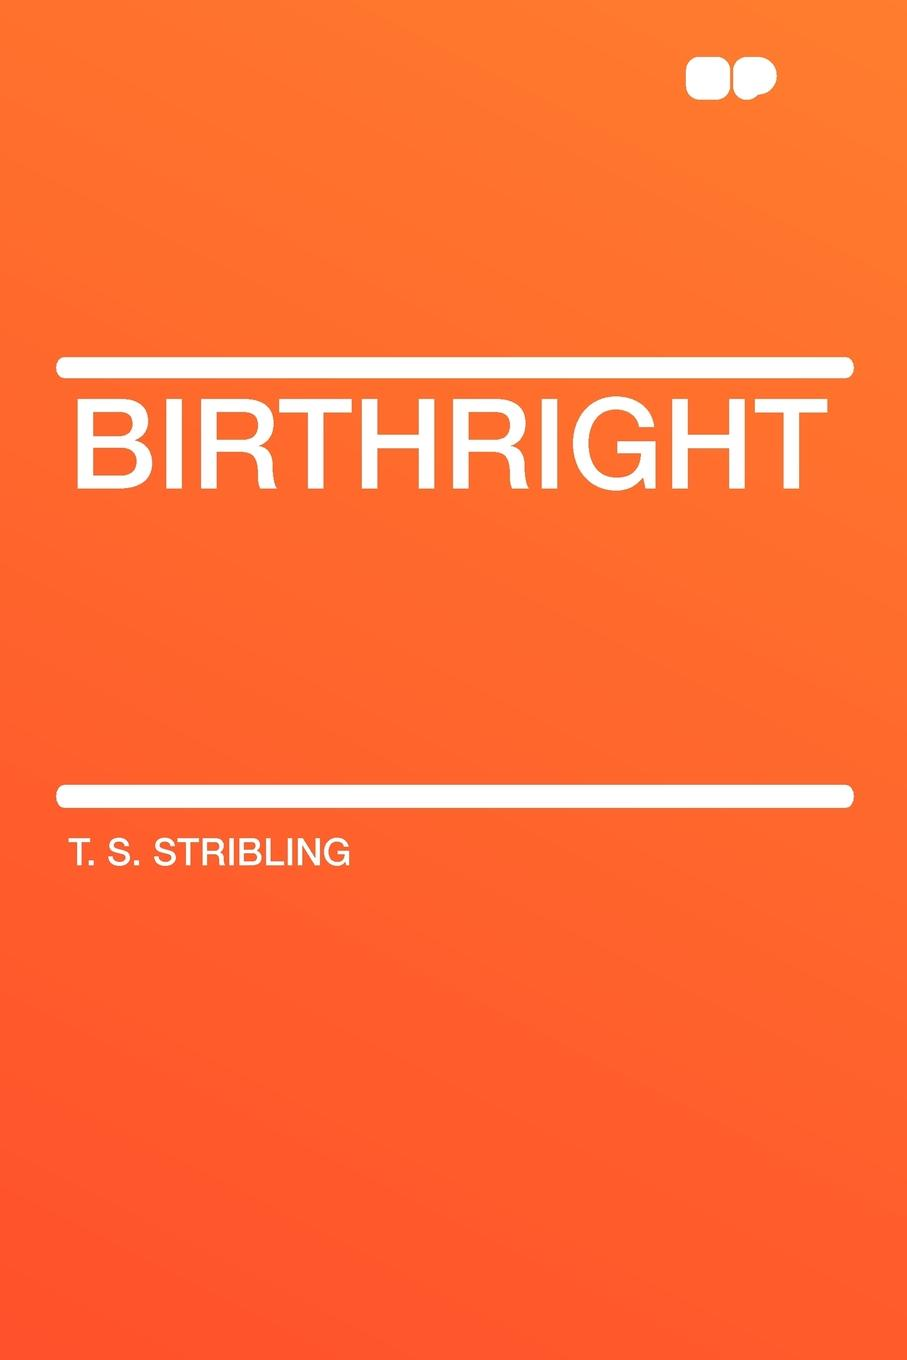 T. S. Stribling Birthright bronwyn williams beckett s birthright